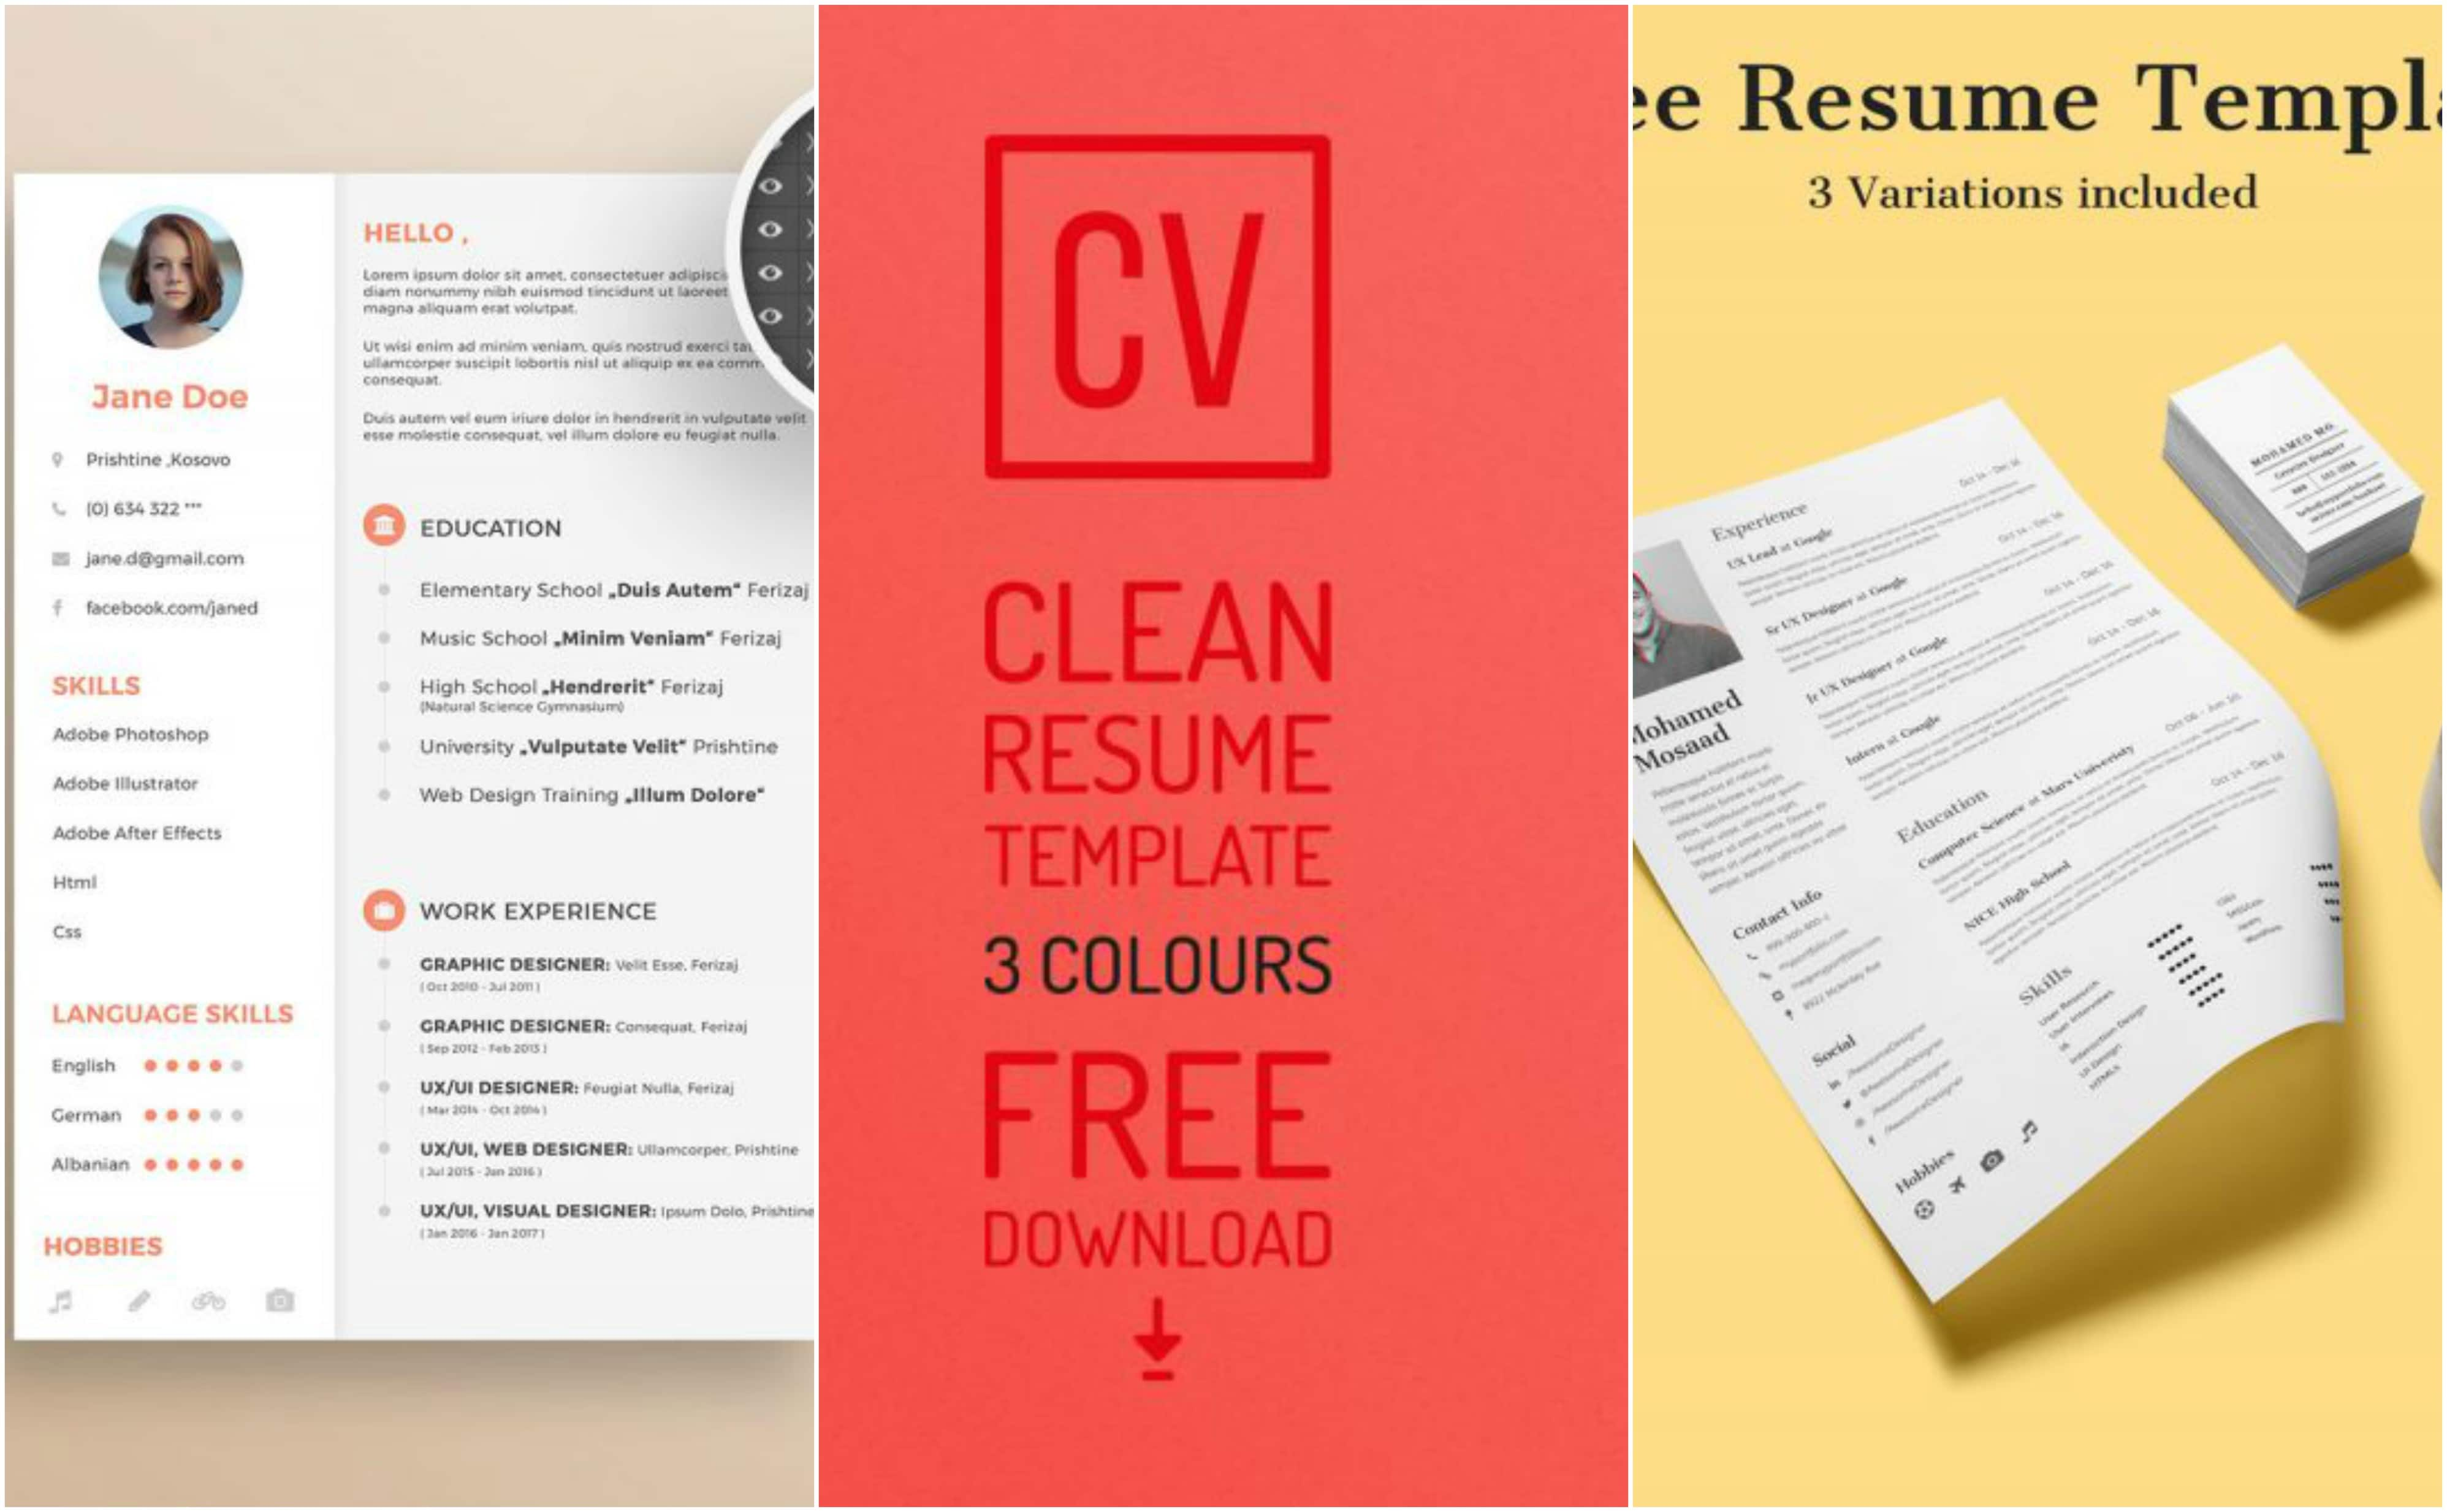 25 Free Resume Templates For Your Next Application Inspirationfeed